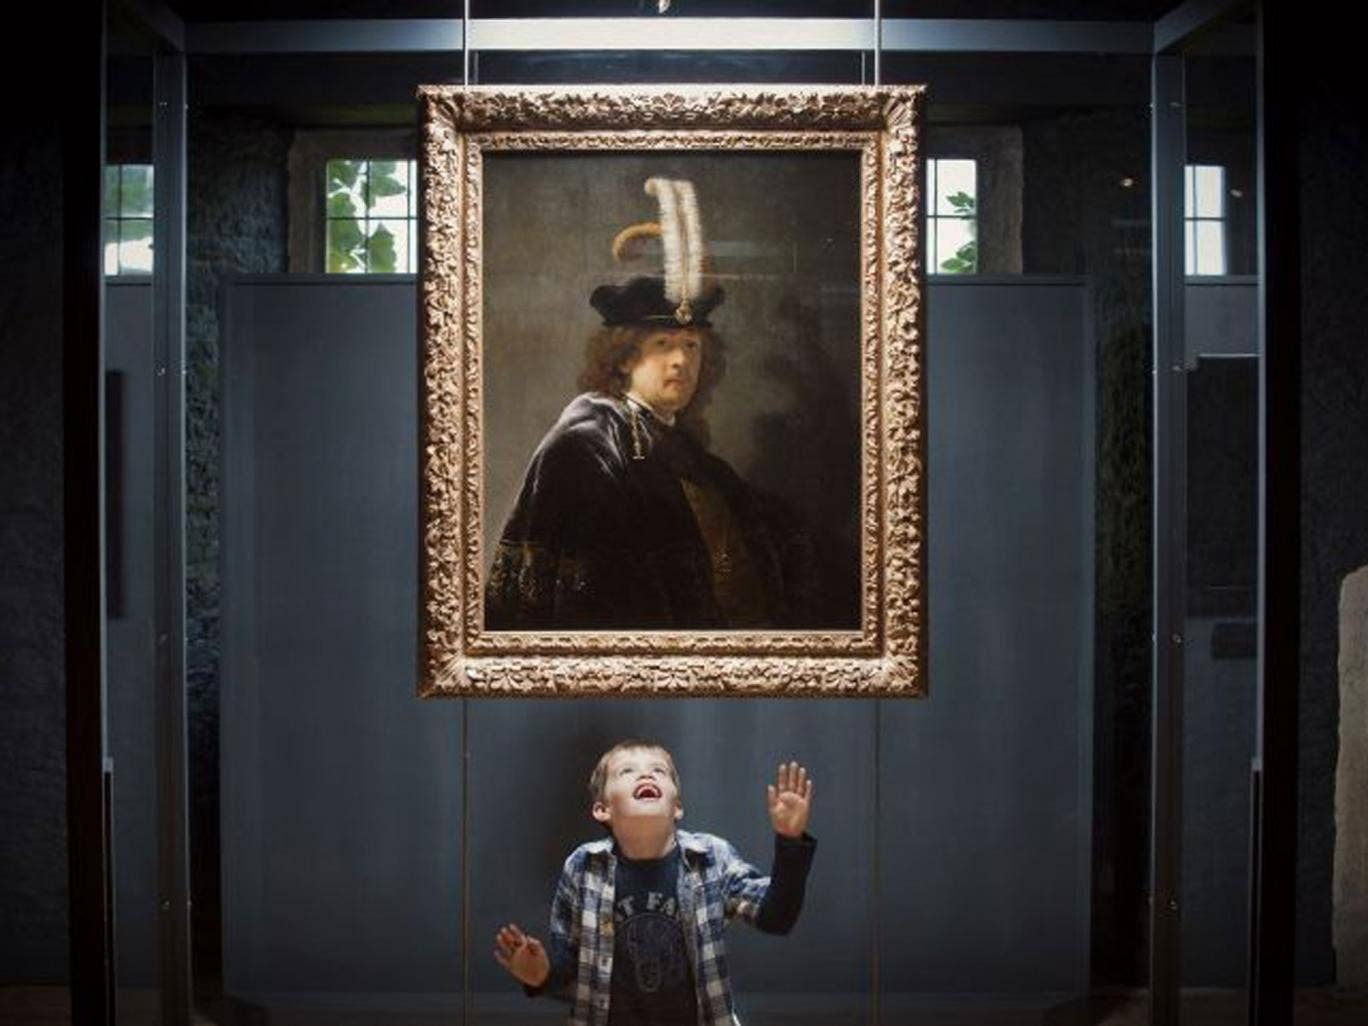 The painting was dismissed as original over 45 years earlier as not being accomplished enough to be a Rembrandt